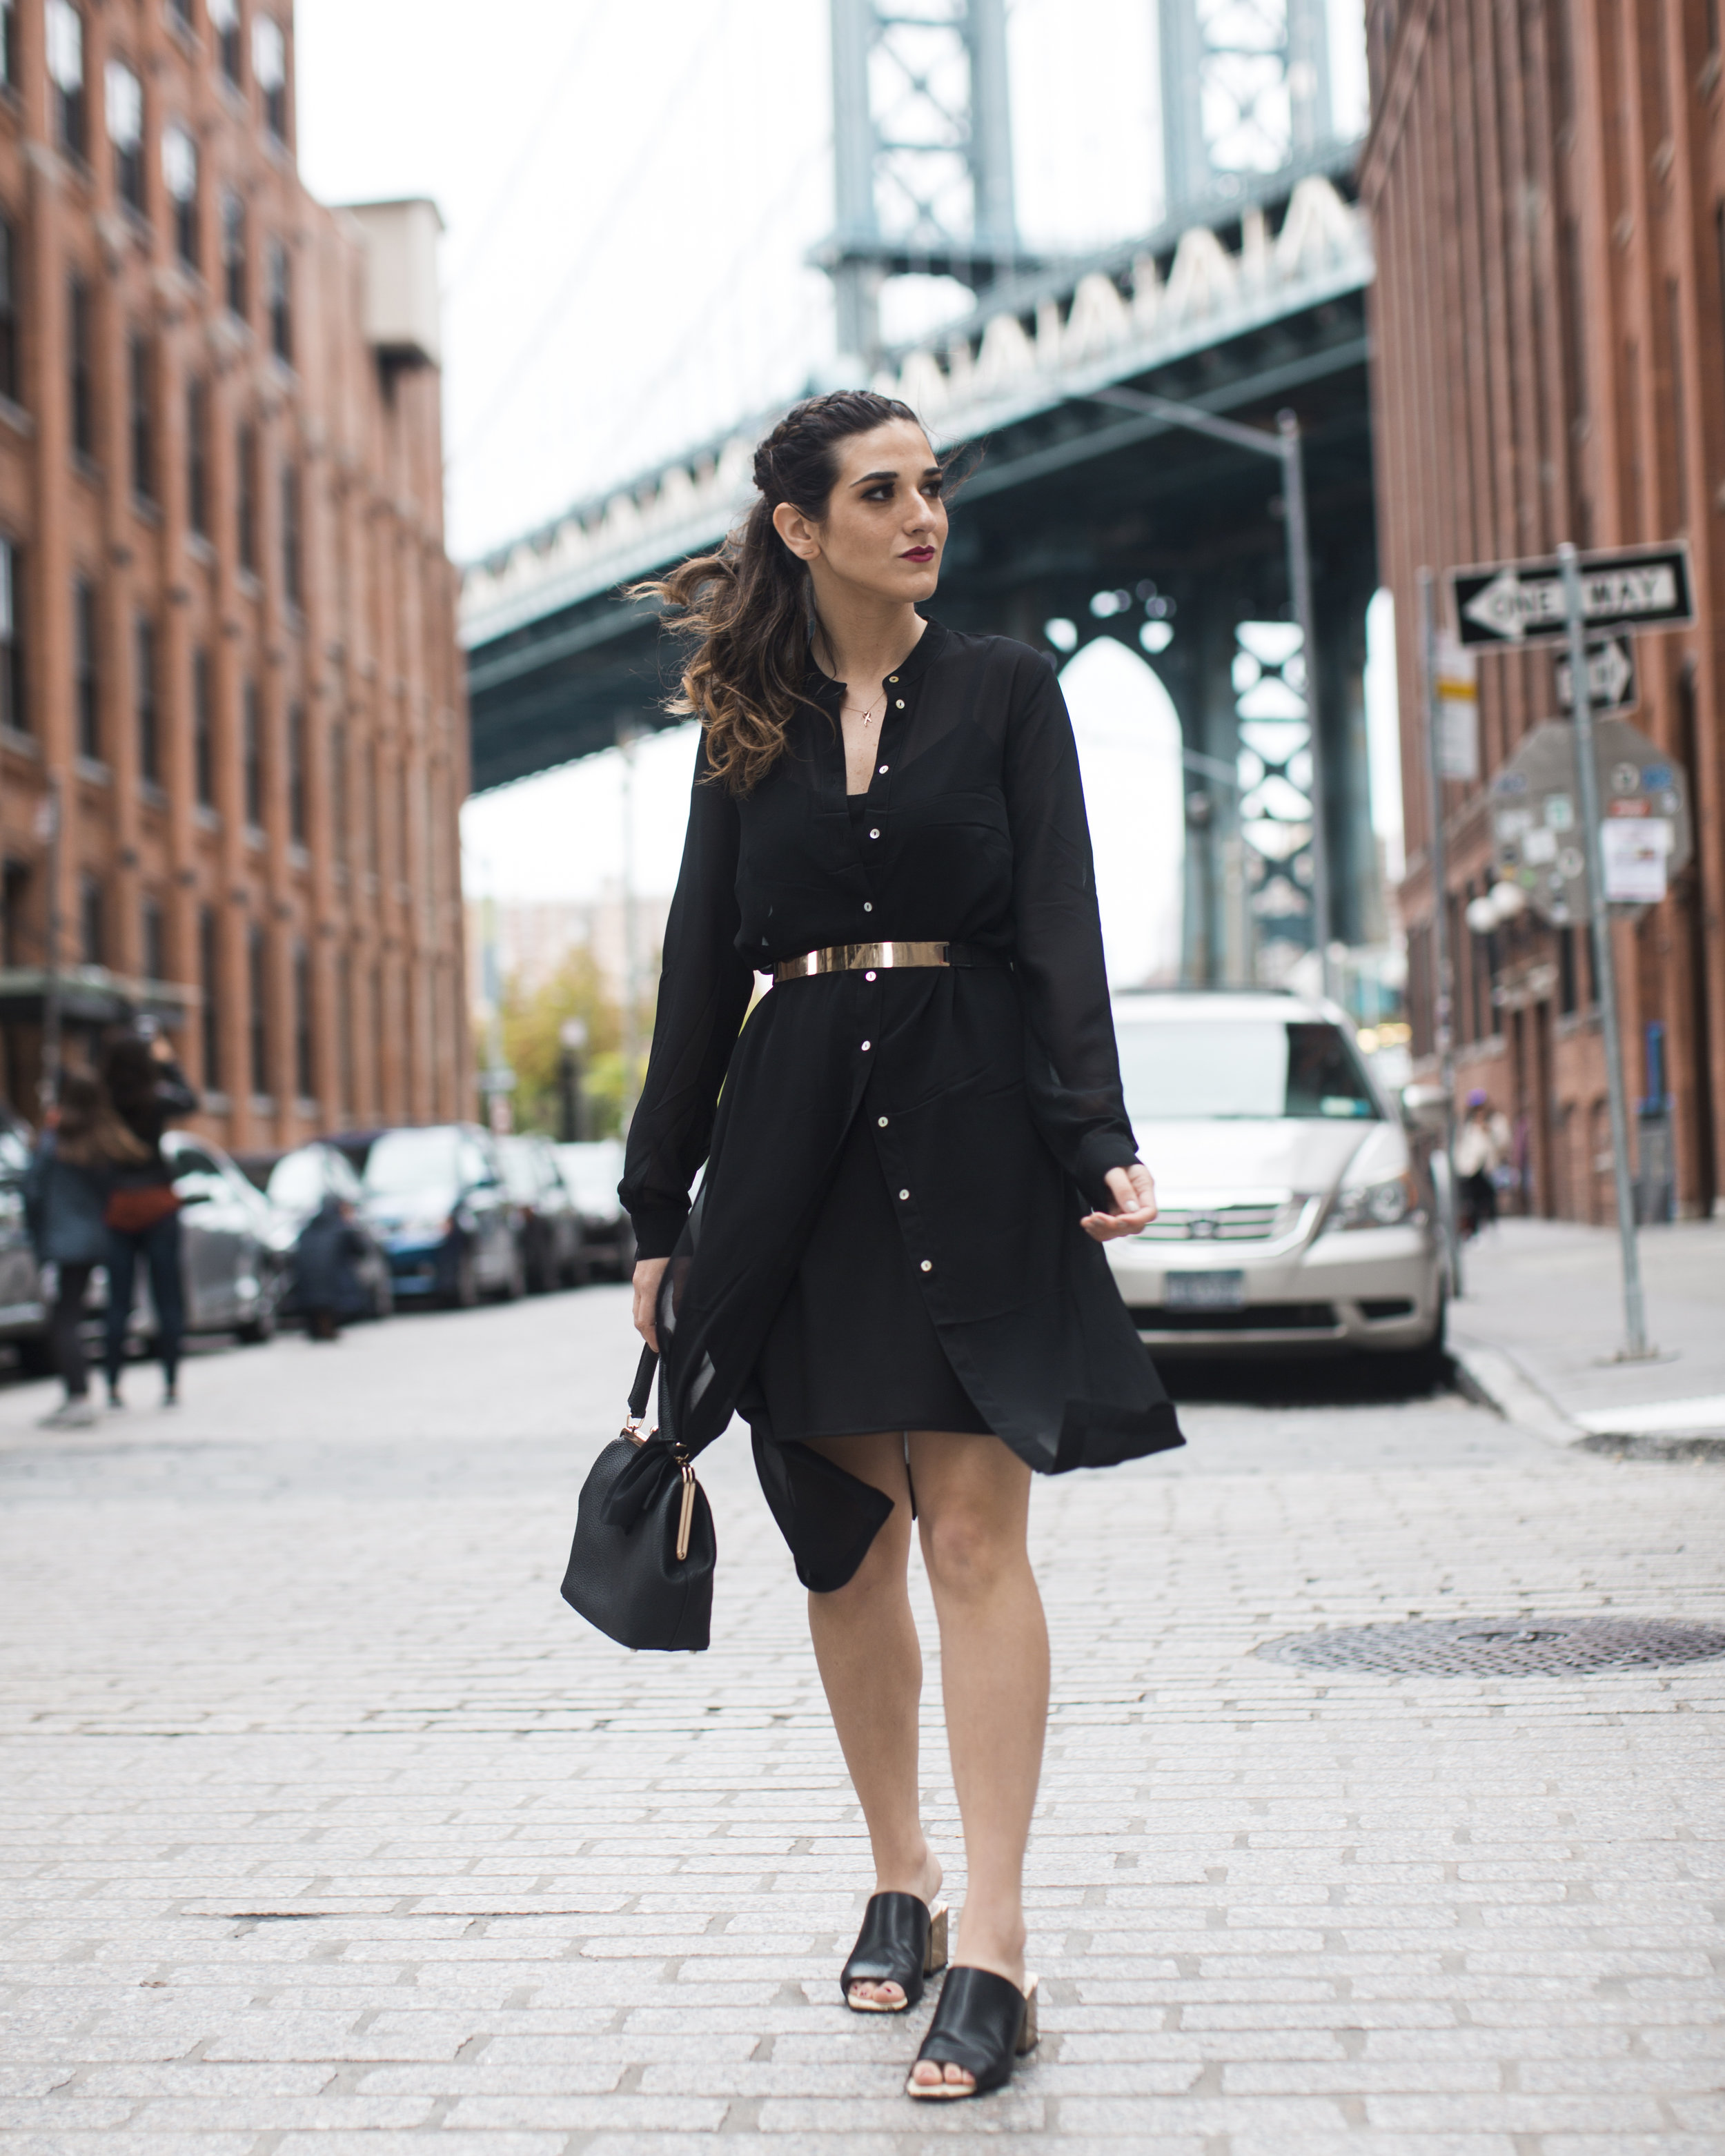 Gold Ribbon Pendant Leibish and Co. Diamonds Louboutins & Love Fashion Blog Esther Santer NYC Street Style Blogger Monochrome Mules Necklace Braid Hair Girl Women Shirt Dress All Black Red Lipstick Outfit Trendy Inspo Jewelry OOTD Wear Bag Inspo Shop.jpg